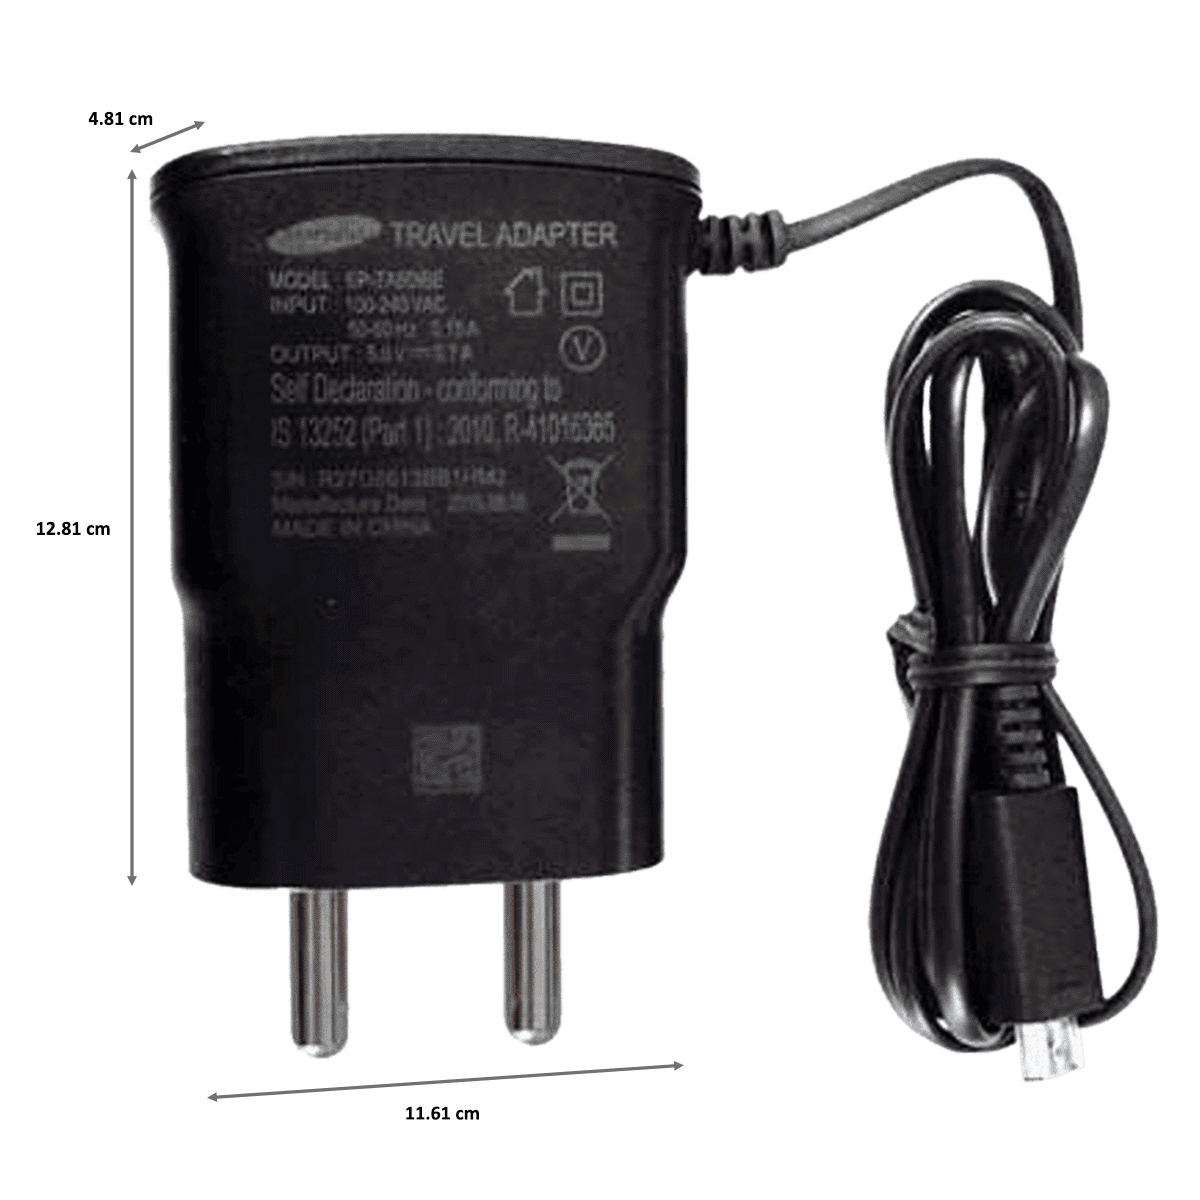 Samsung Wall Travel Adapter with Cable (EP-TA60IBEUGIN, Black)_2